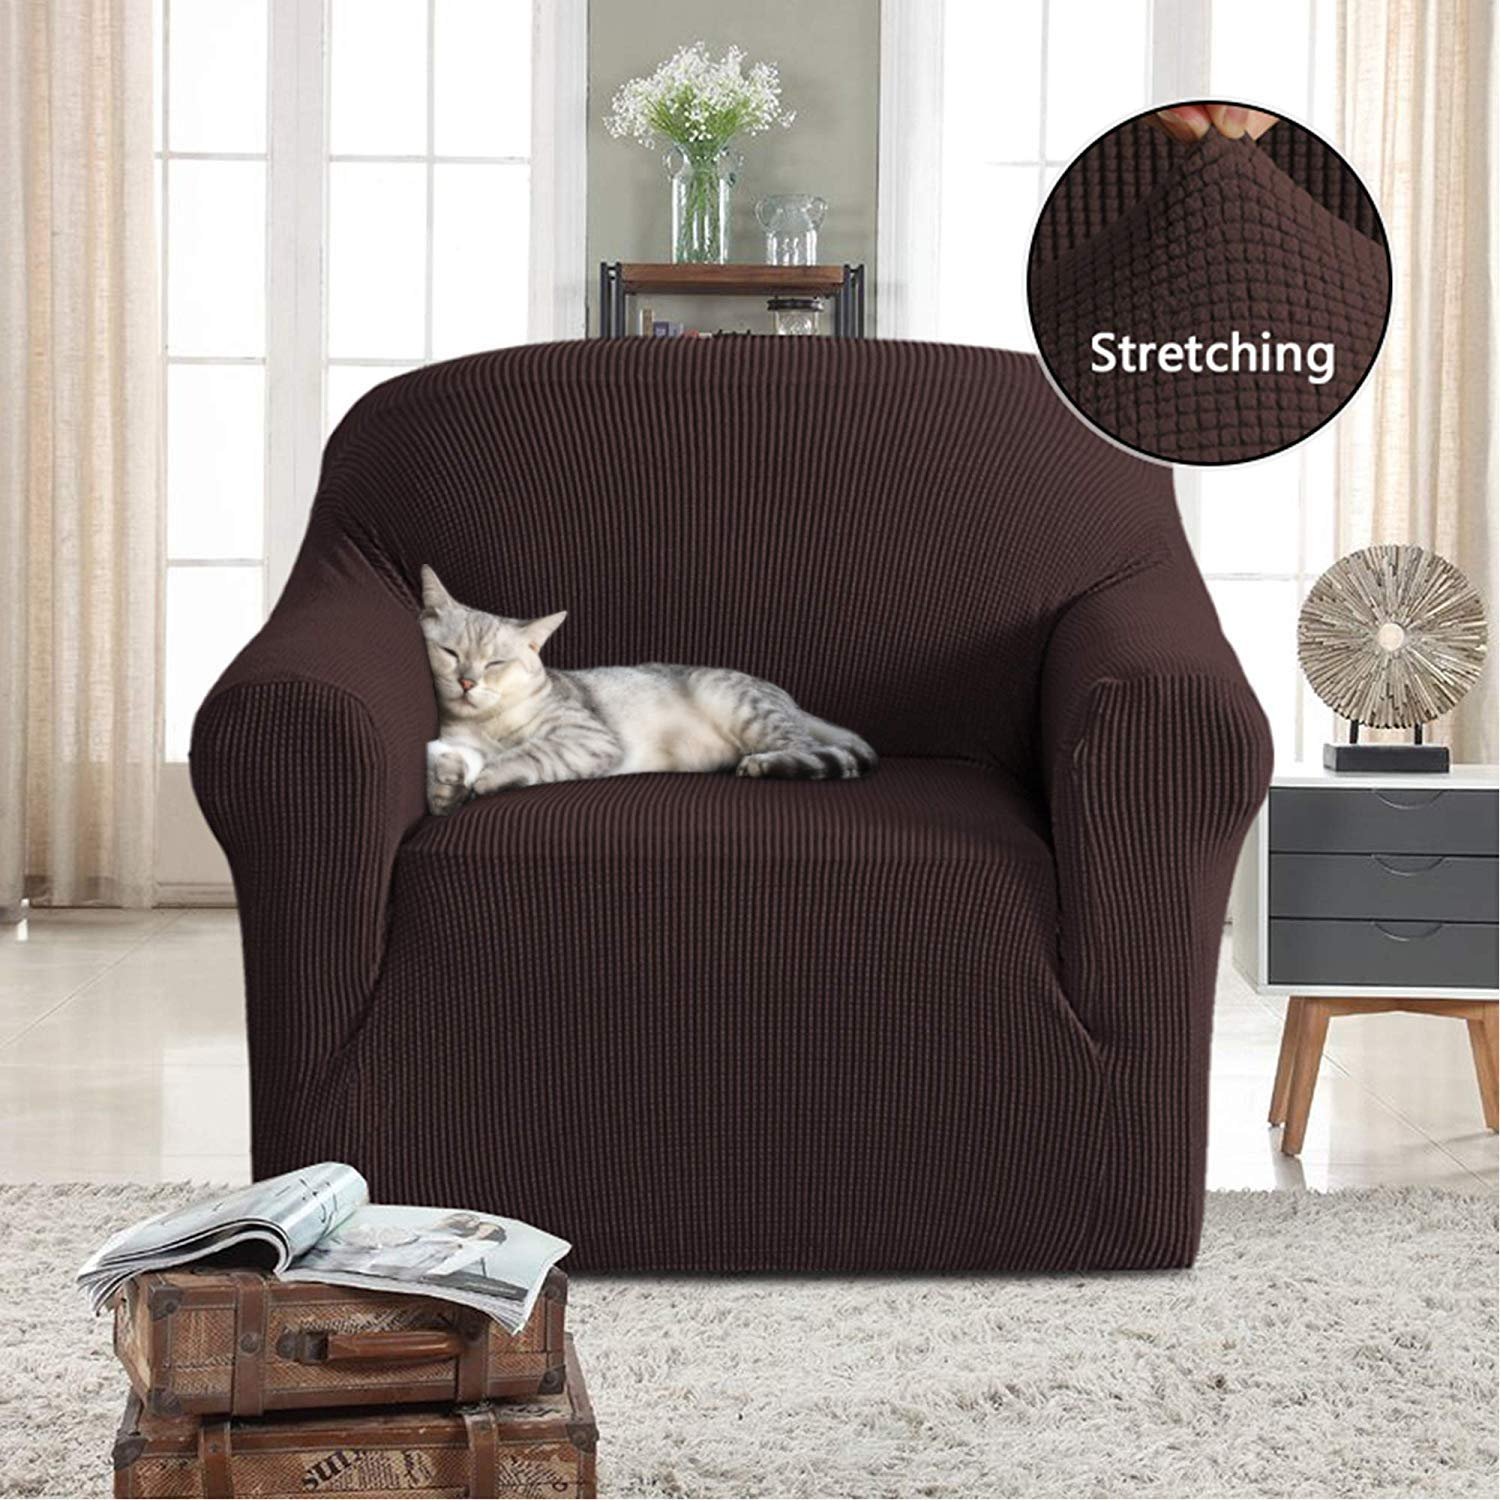 High Stretch 1 Piece Jacquard Lycra Sofa Cover//Slipcover Soft Spandex Form Fit Slip Resistant Stylish Furniture Protector Couch Covers for Pets Loveseat 2 Seater Brown PrimeBeau PBSlipcover1LS/_Brown